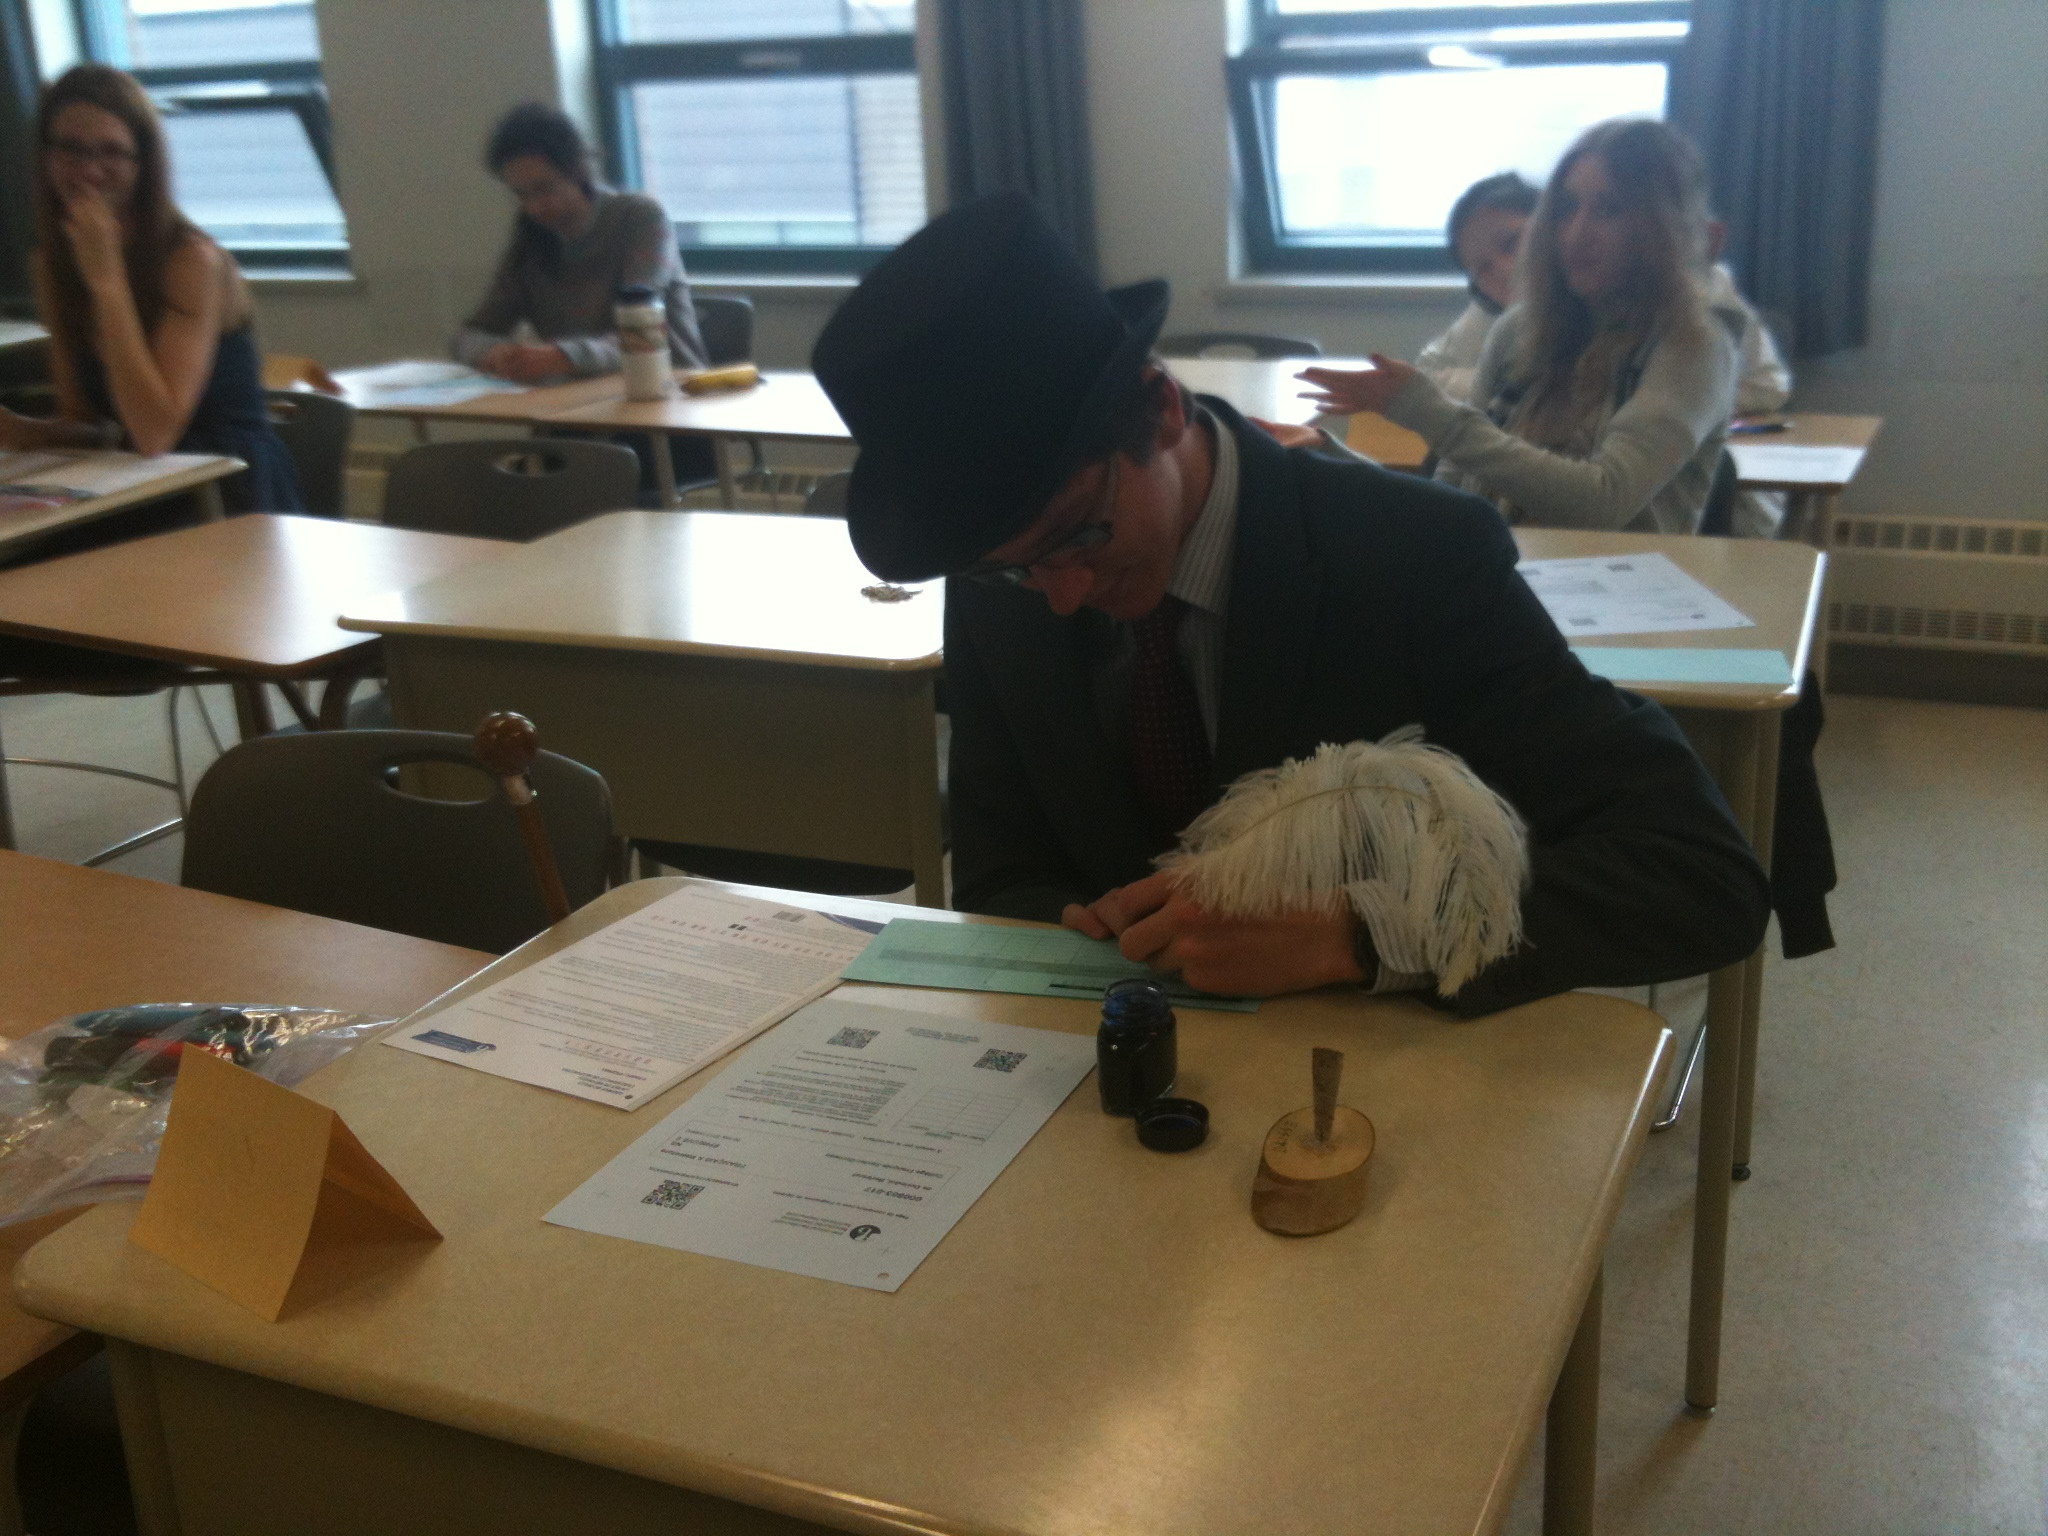 Kid shows up to take his college entrance exams with a suit, top hat, cane, and using a quill pen. We hope he passed.